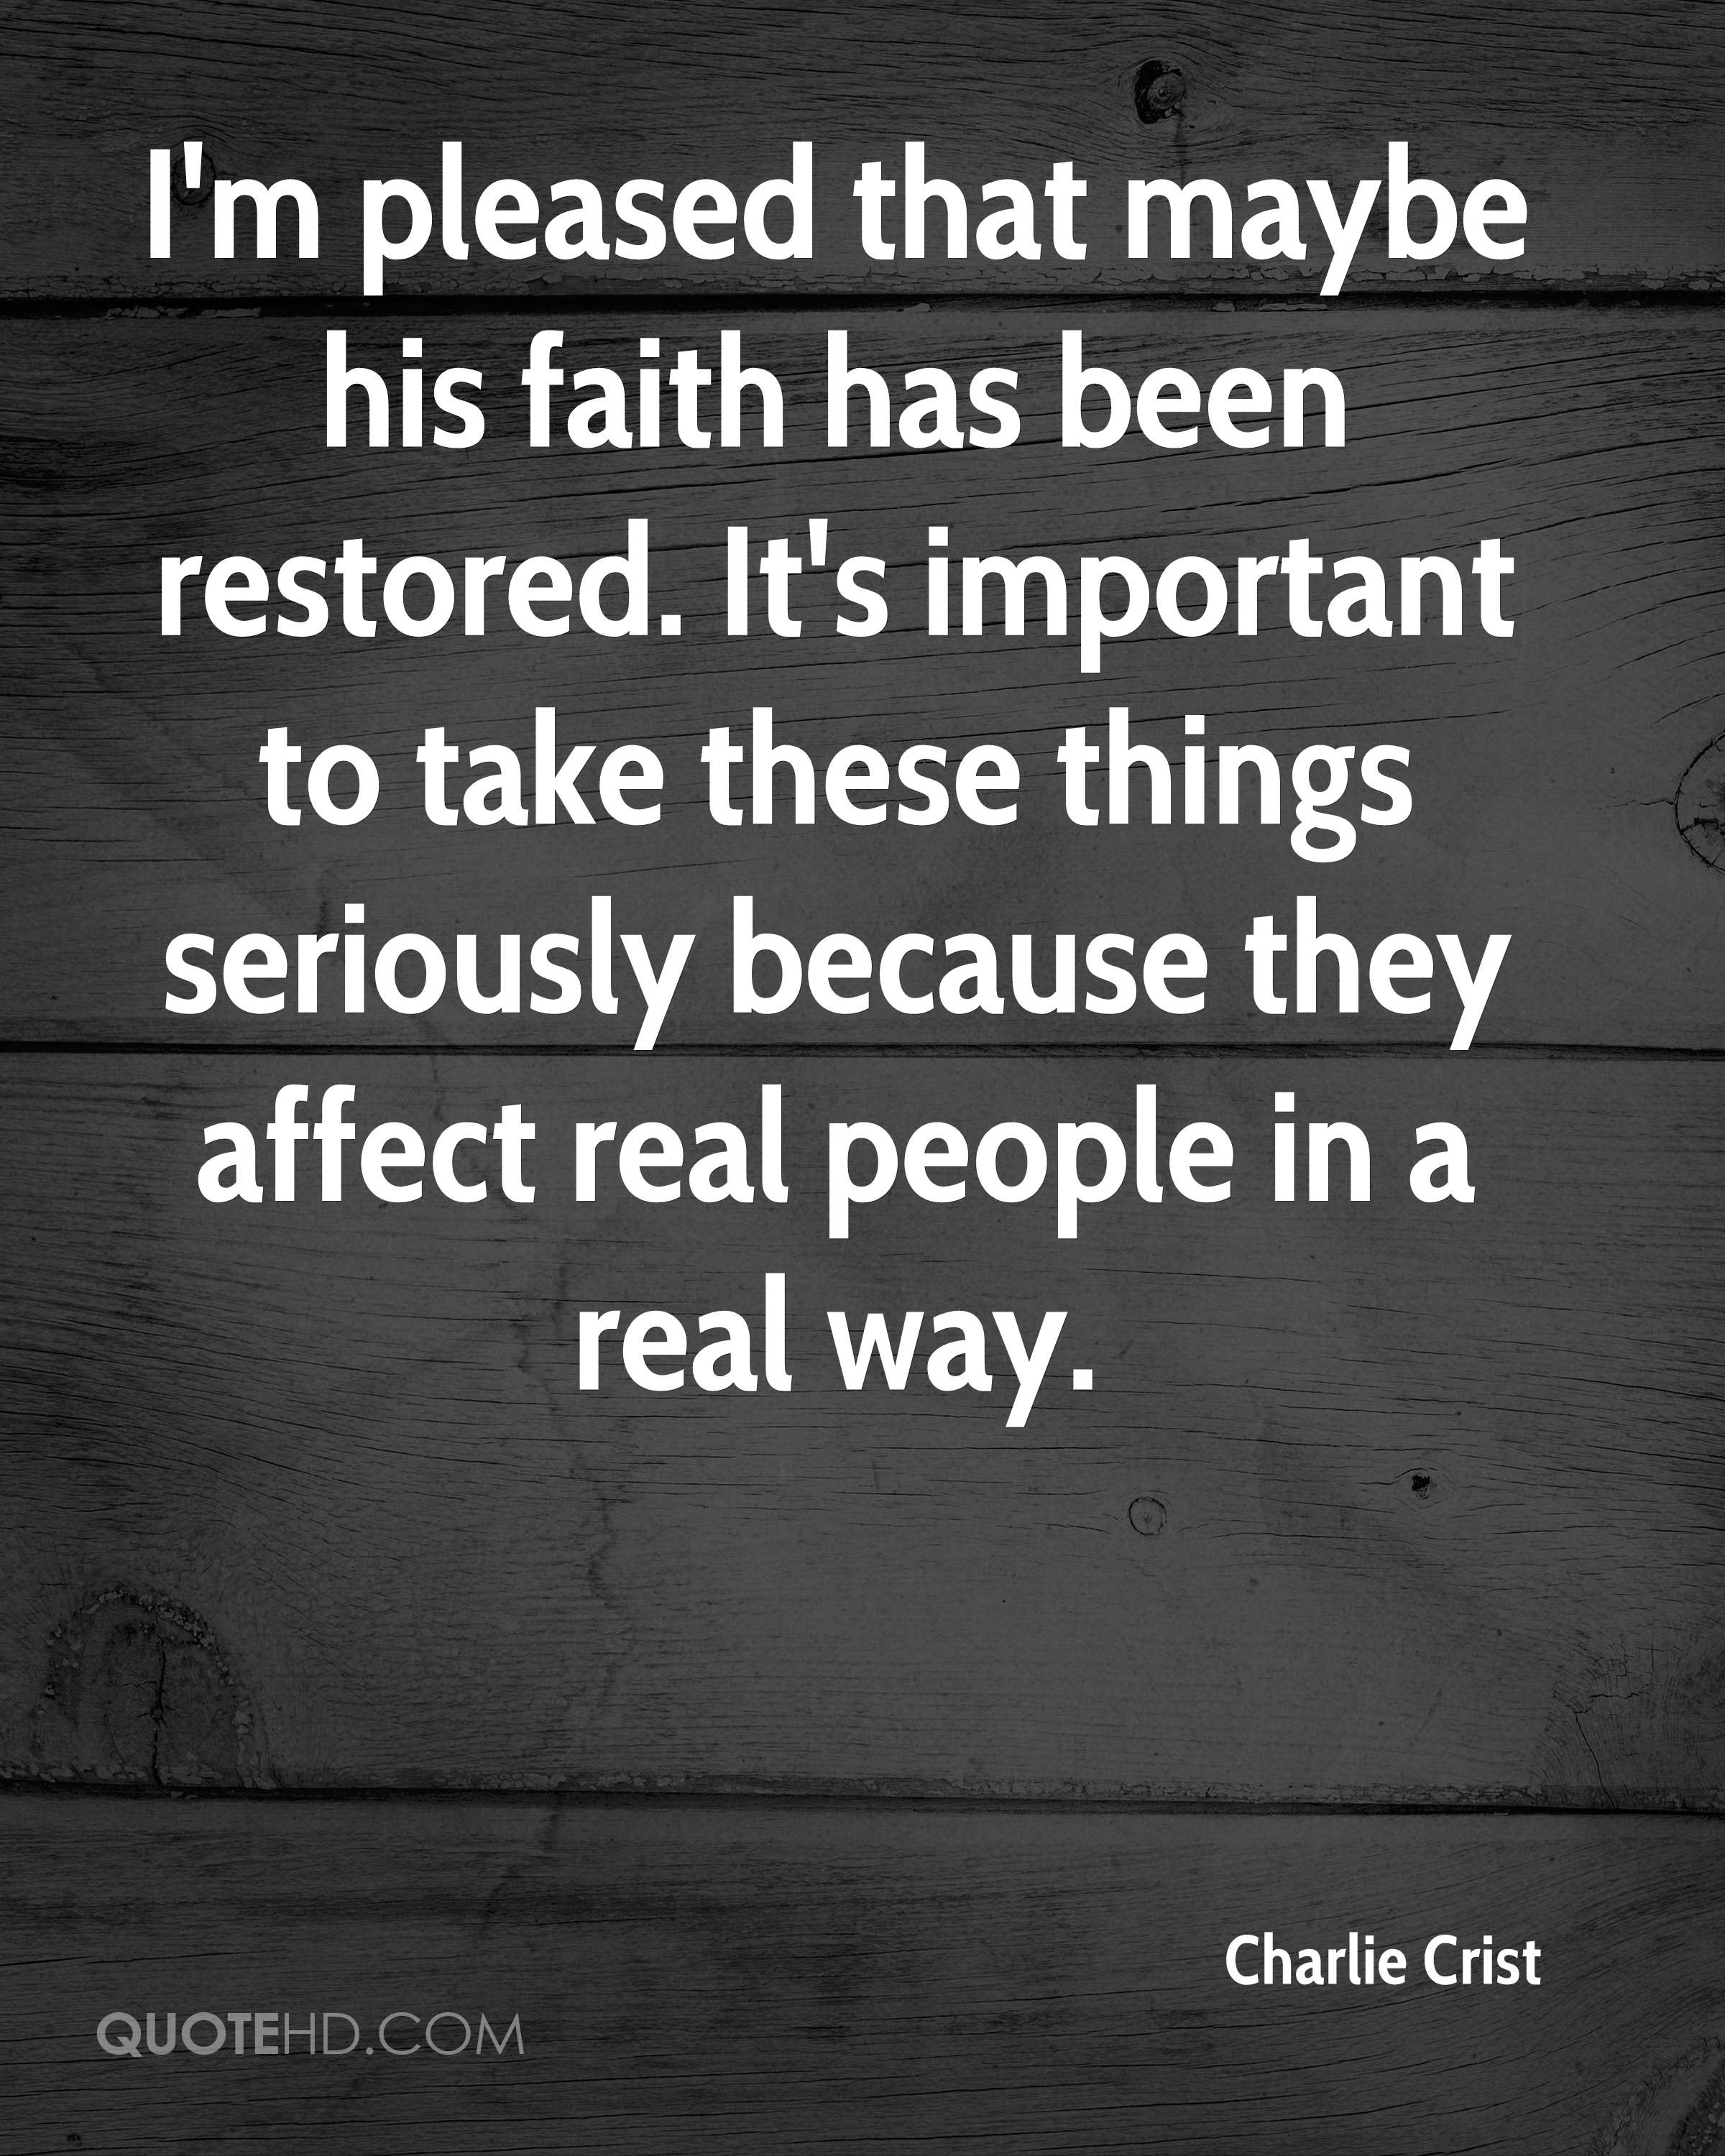 I'm pleased that maybe his faith has been restored. It's important to take these things seriously because they affect real people in a real way.